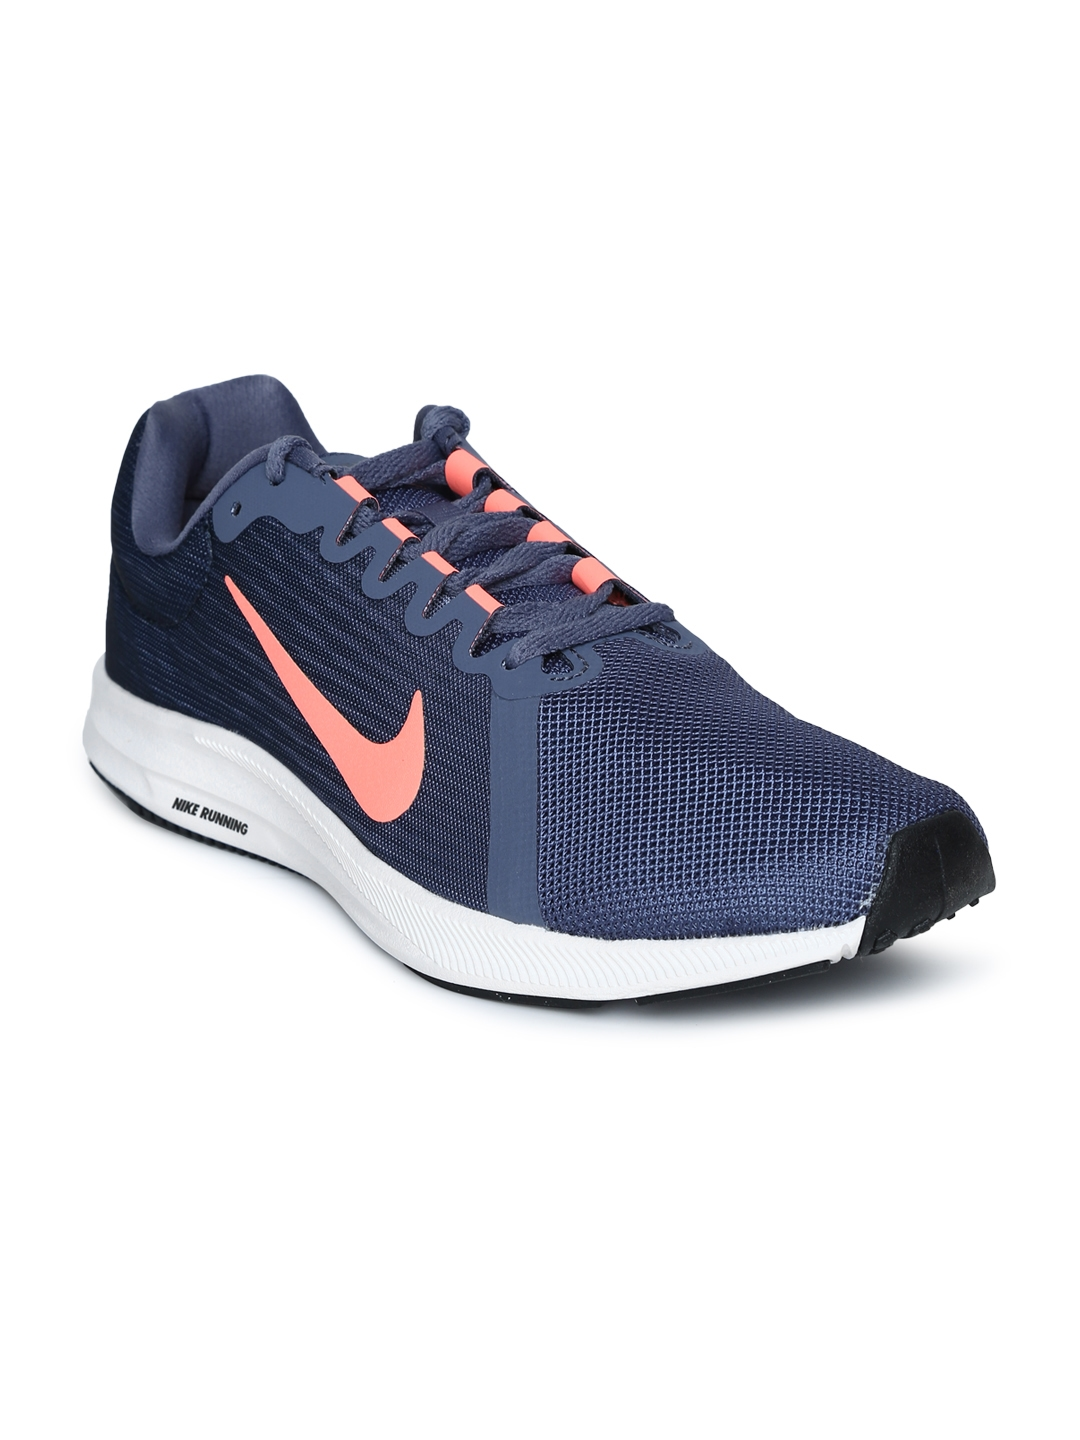 f6fbaa4914b9 Buy Nike Women Navy Blue Downshifter 8 Running Shoes - Sports Shoes ...